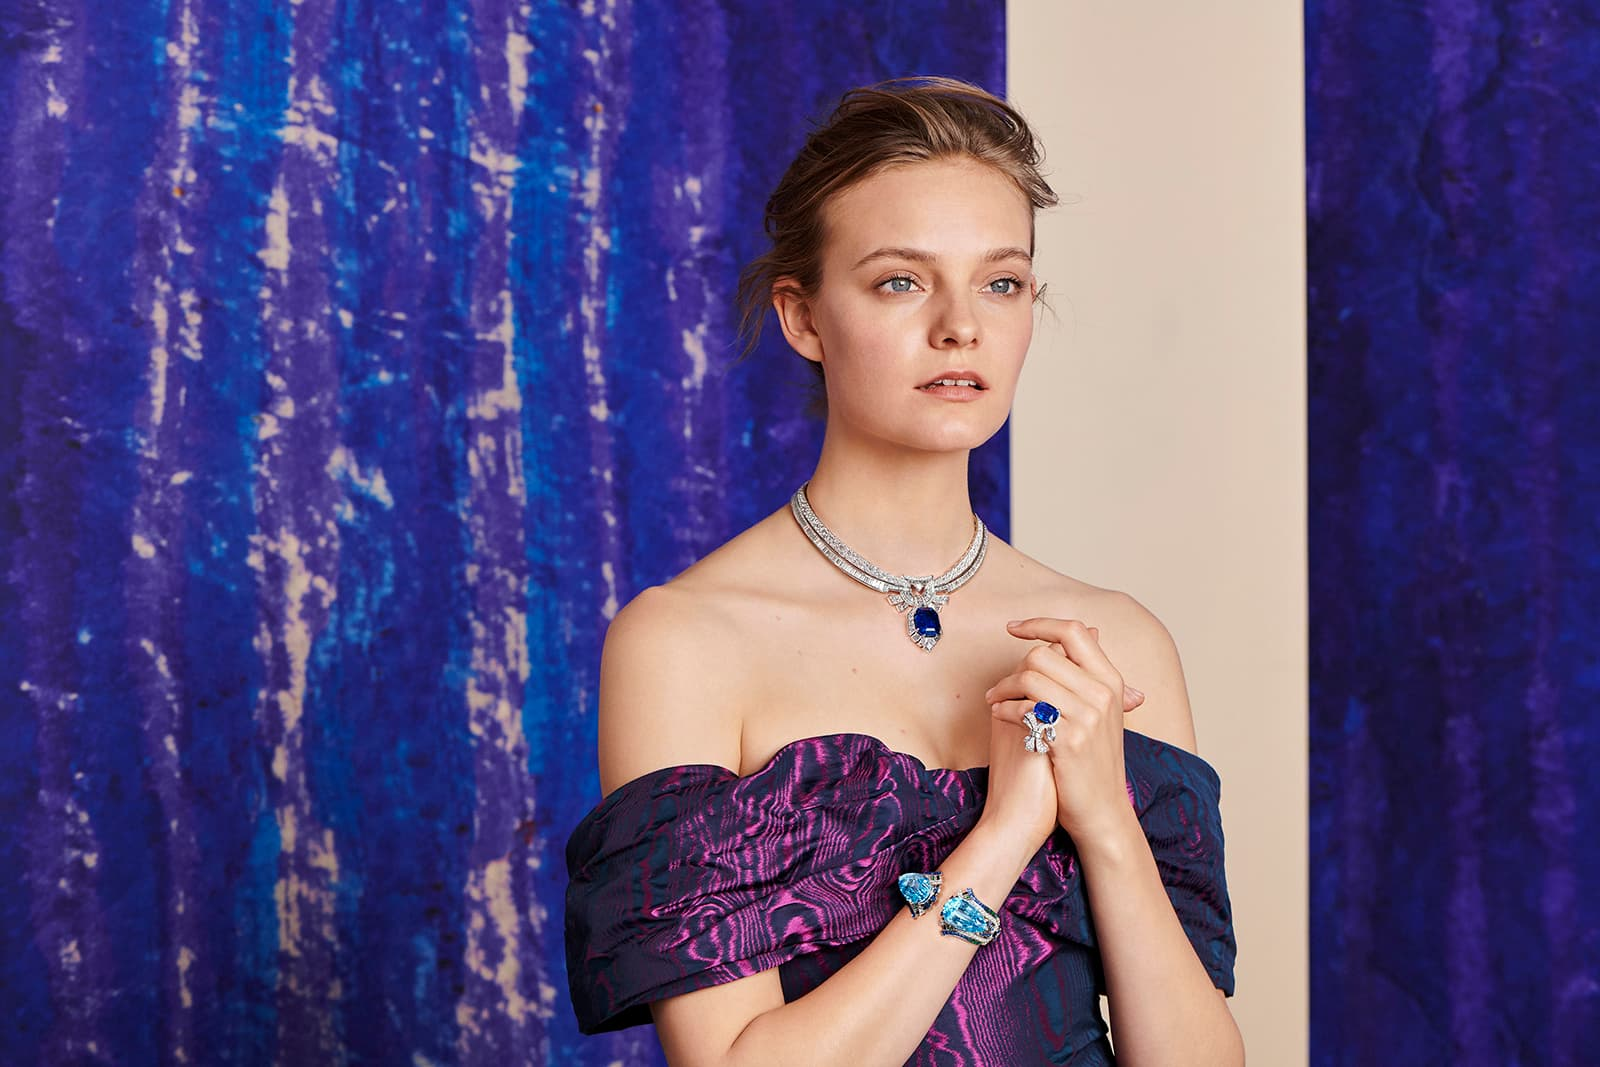 Van Cleef & Arpels 'Romeo and Juliet' collection 'Maiolika' necklace, ring and 'Fiore' bracelet